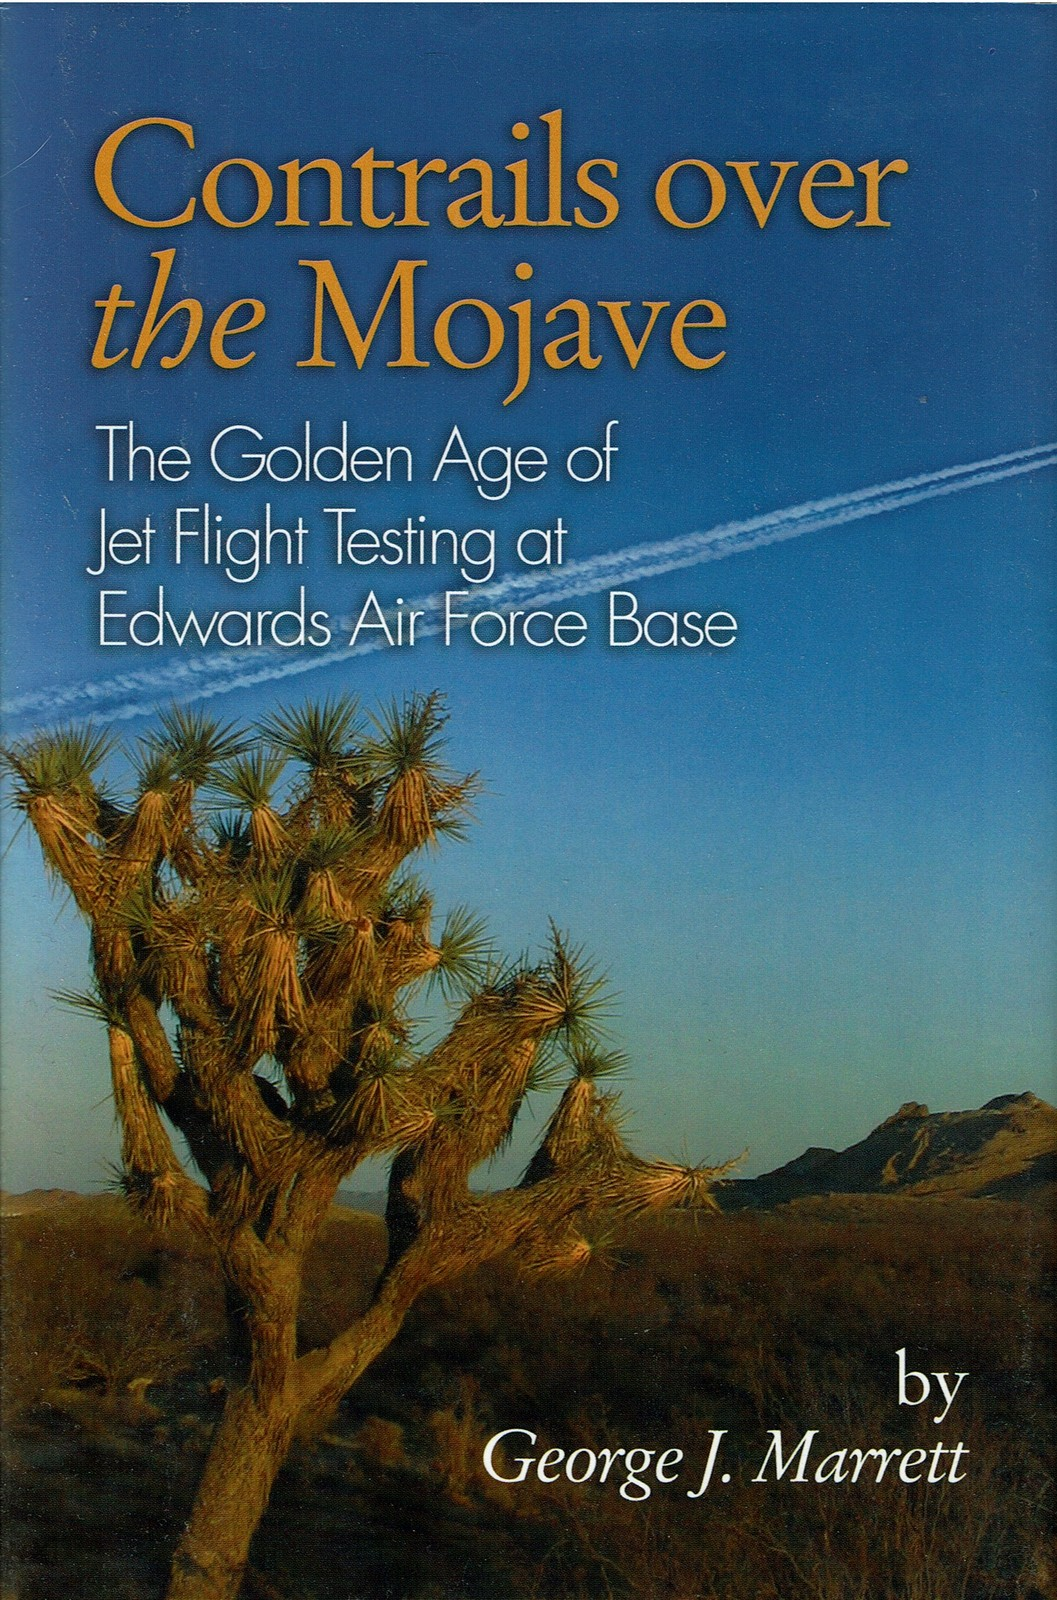 Contrails Over the Mojave, Golden Age of Jet Flight Testing at Edwards AF Base